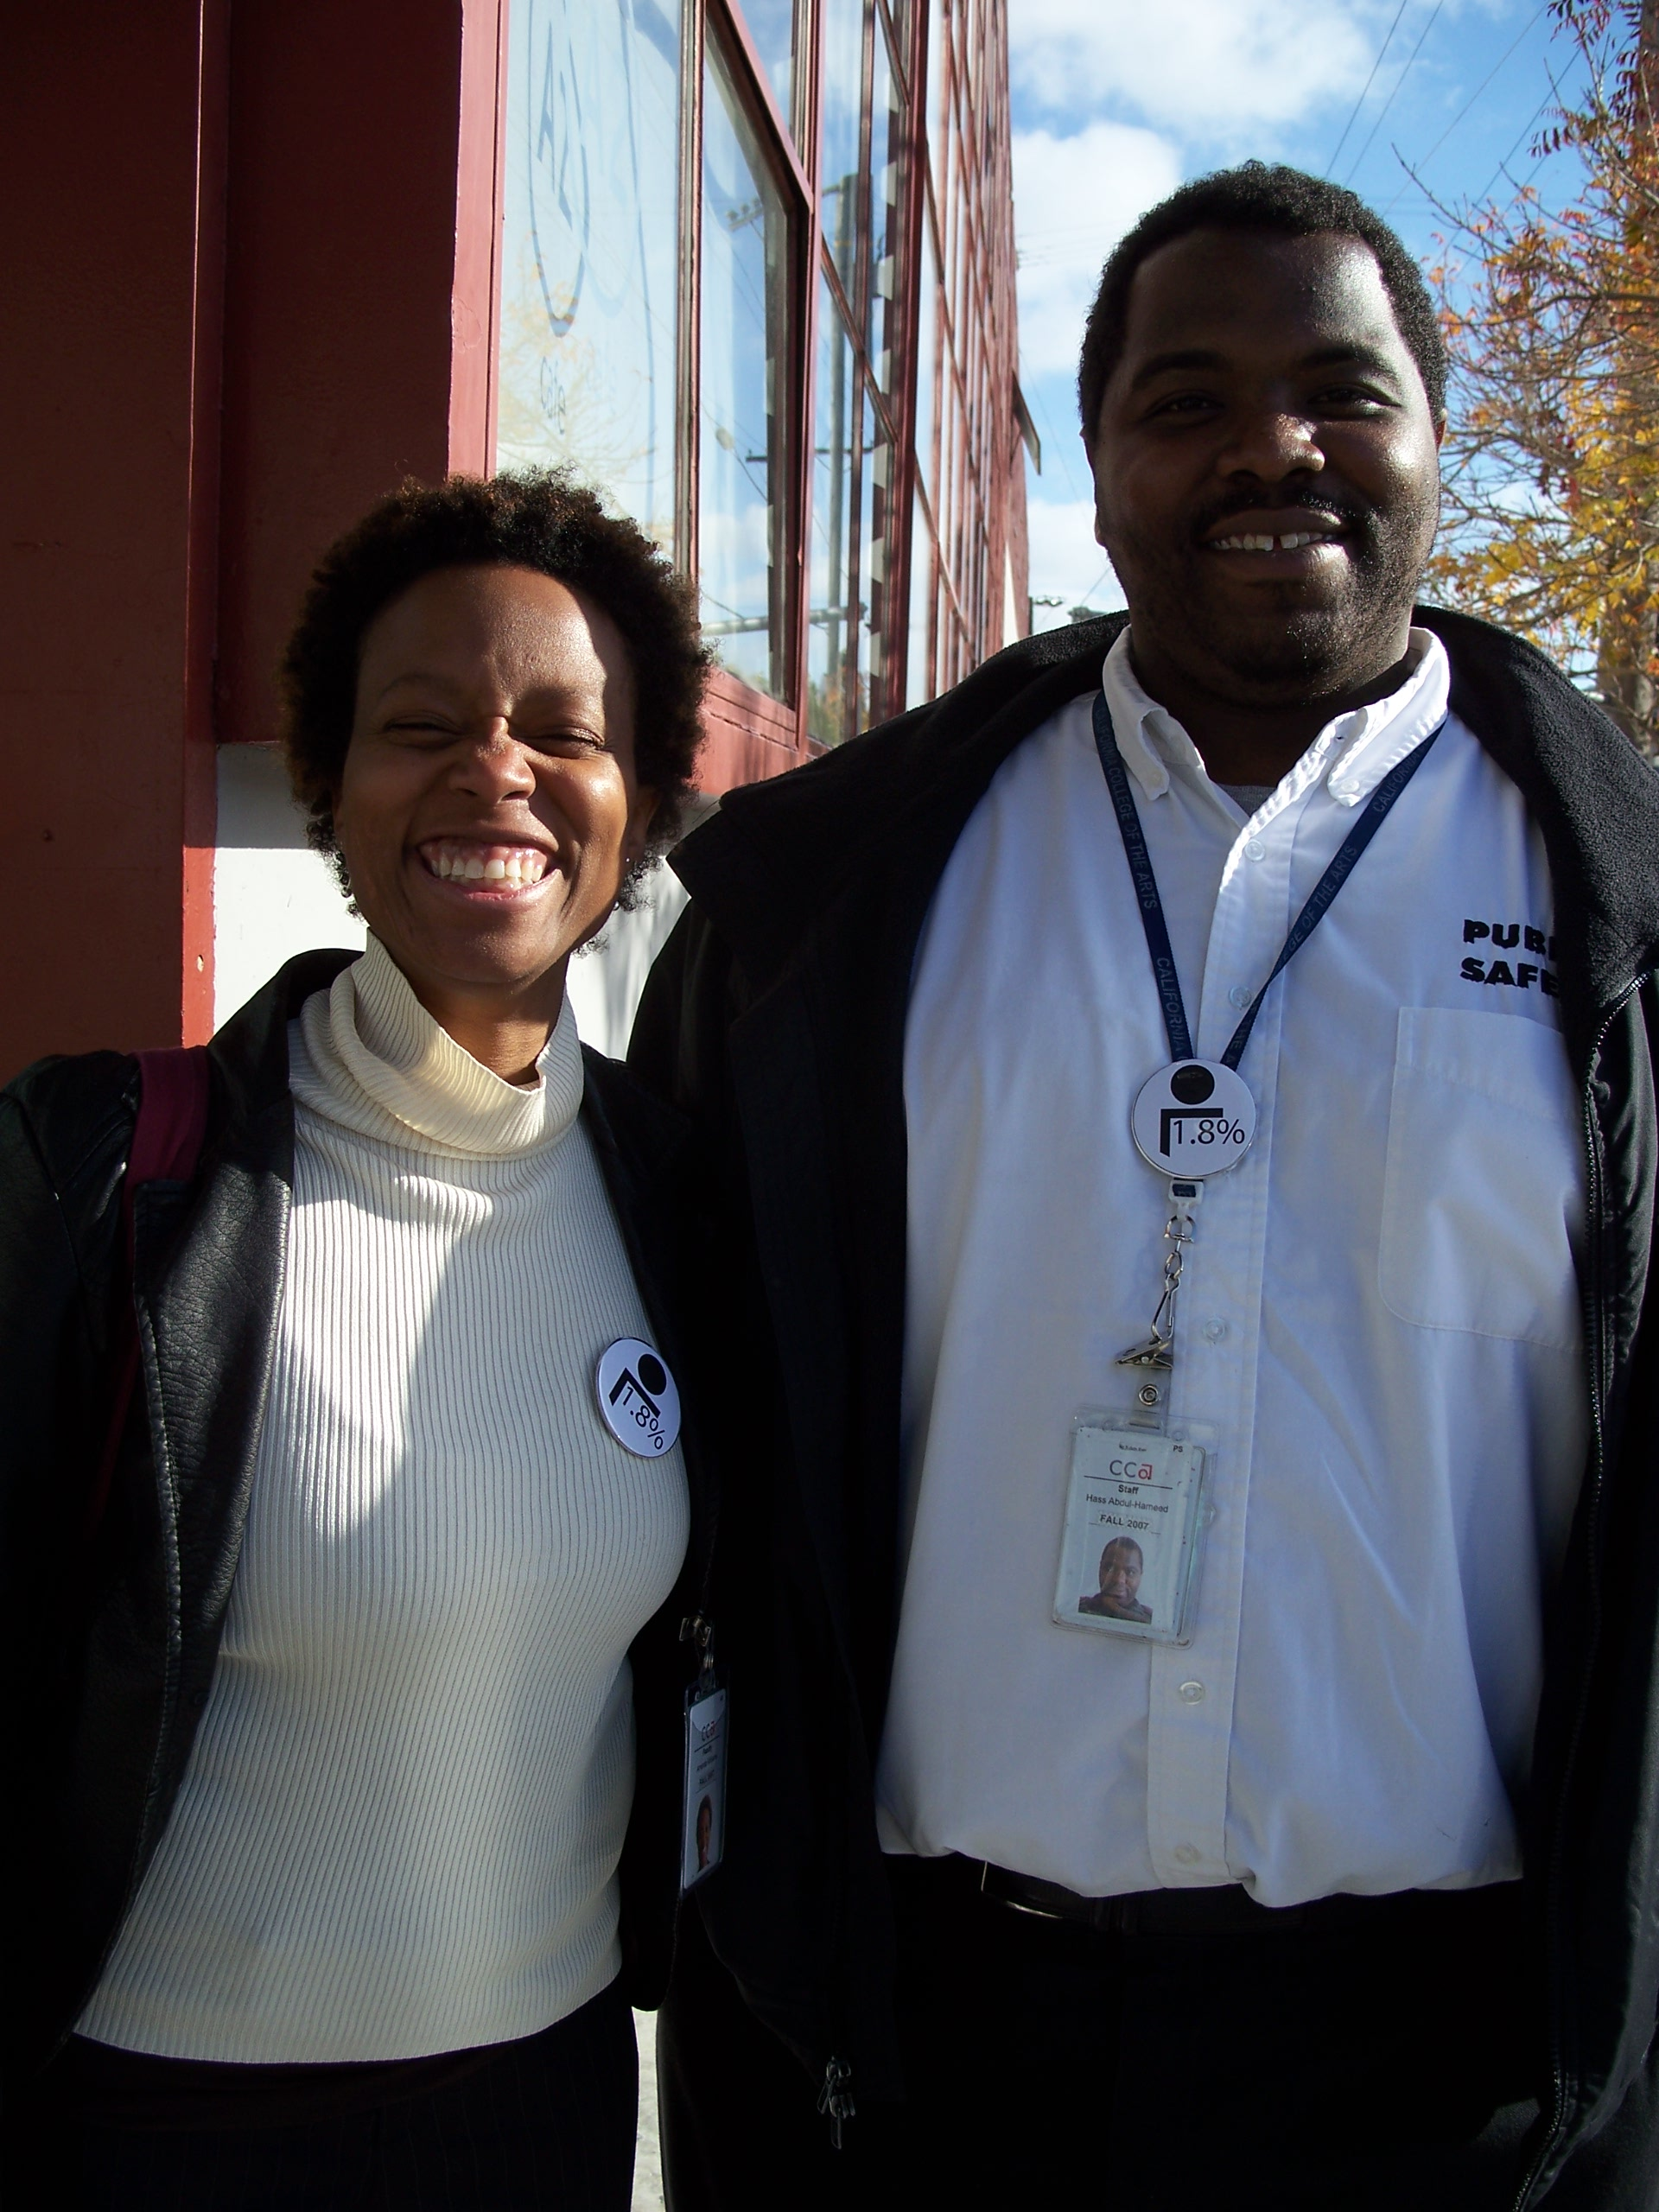 CCA Professor, Amanda Williams, and CCA student/staff member, Hassan Abdul-Hameed